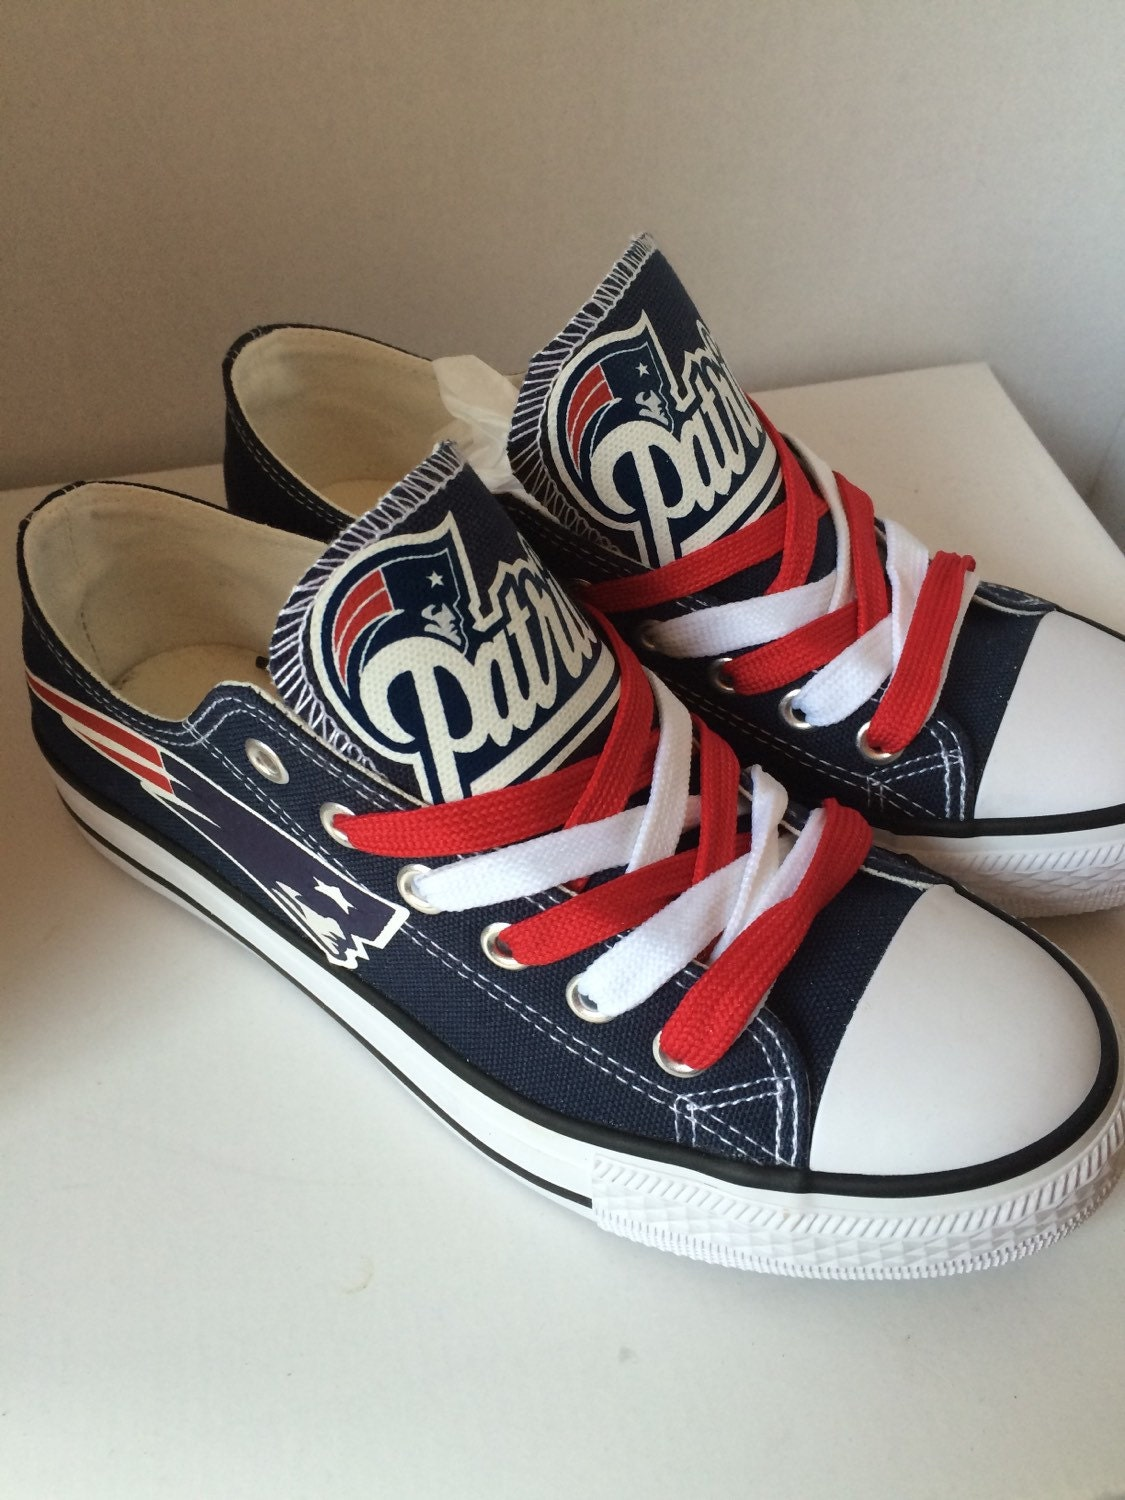 NFL New England Patriots Baby Musical Mobile | Bed Bath ... |New England Patriots Crib Shoes